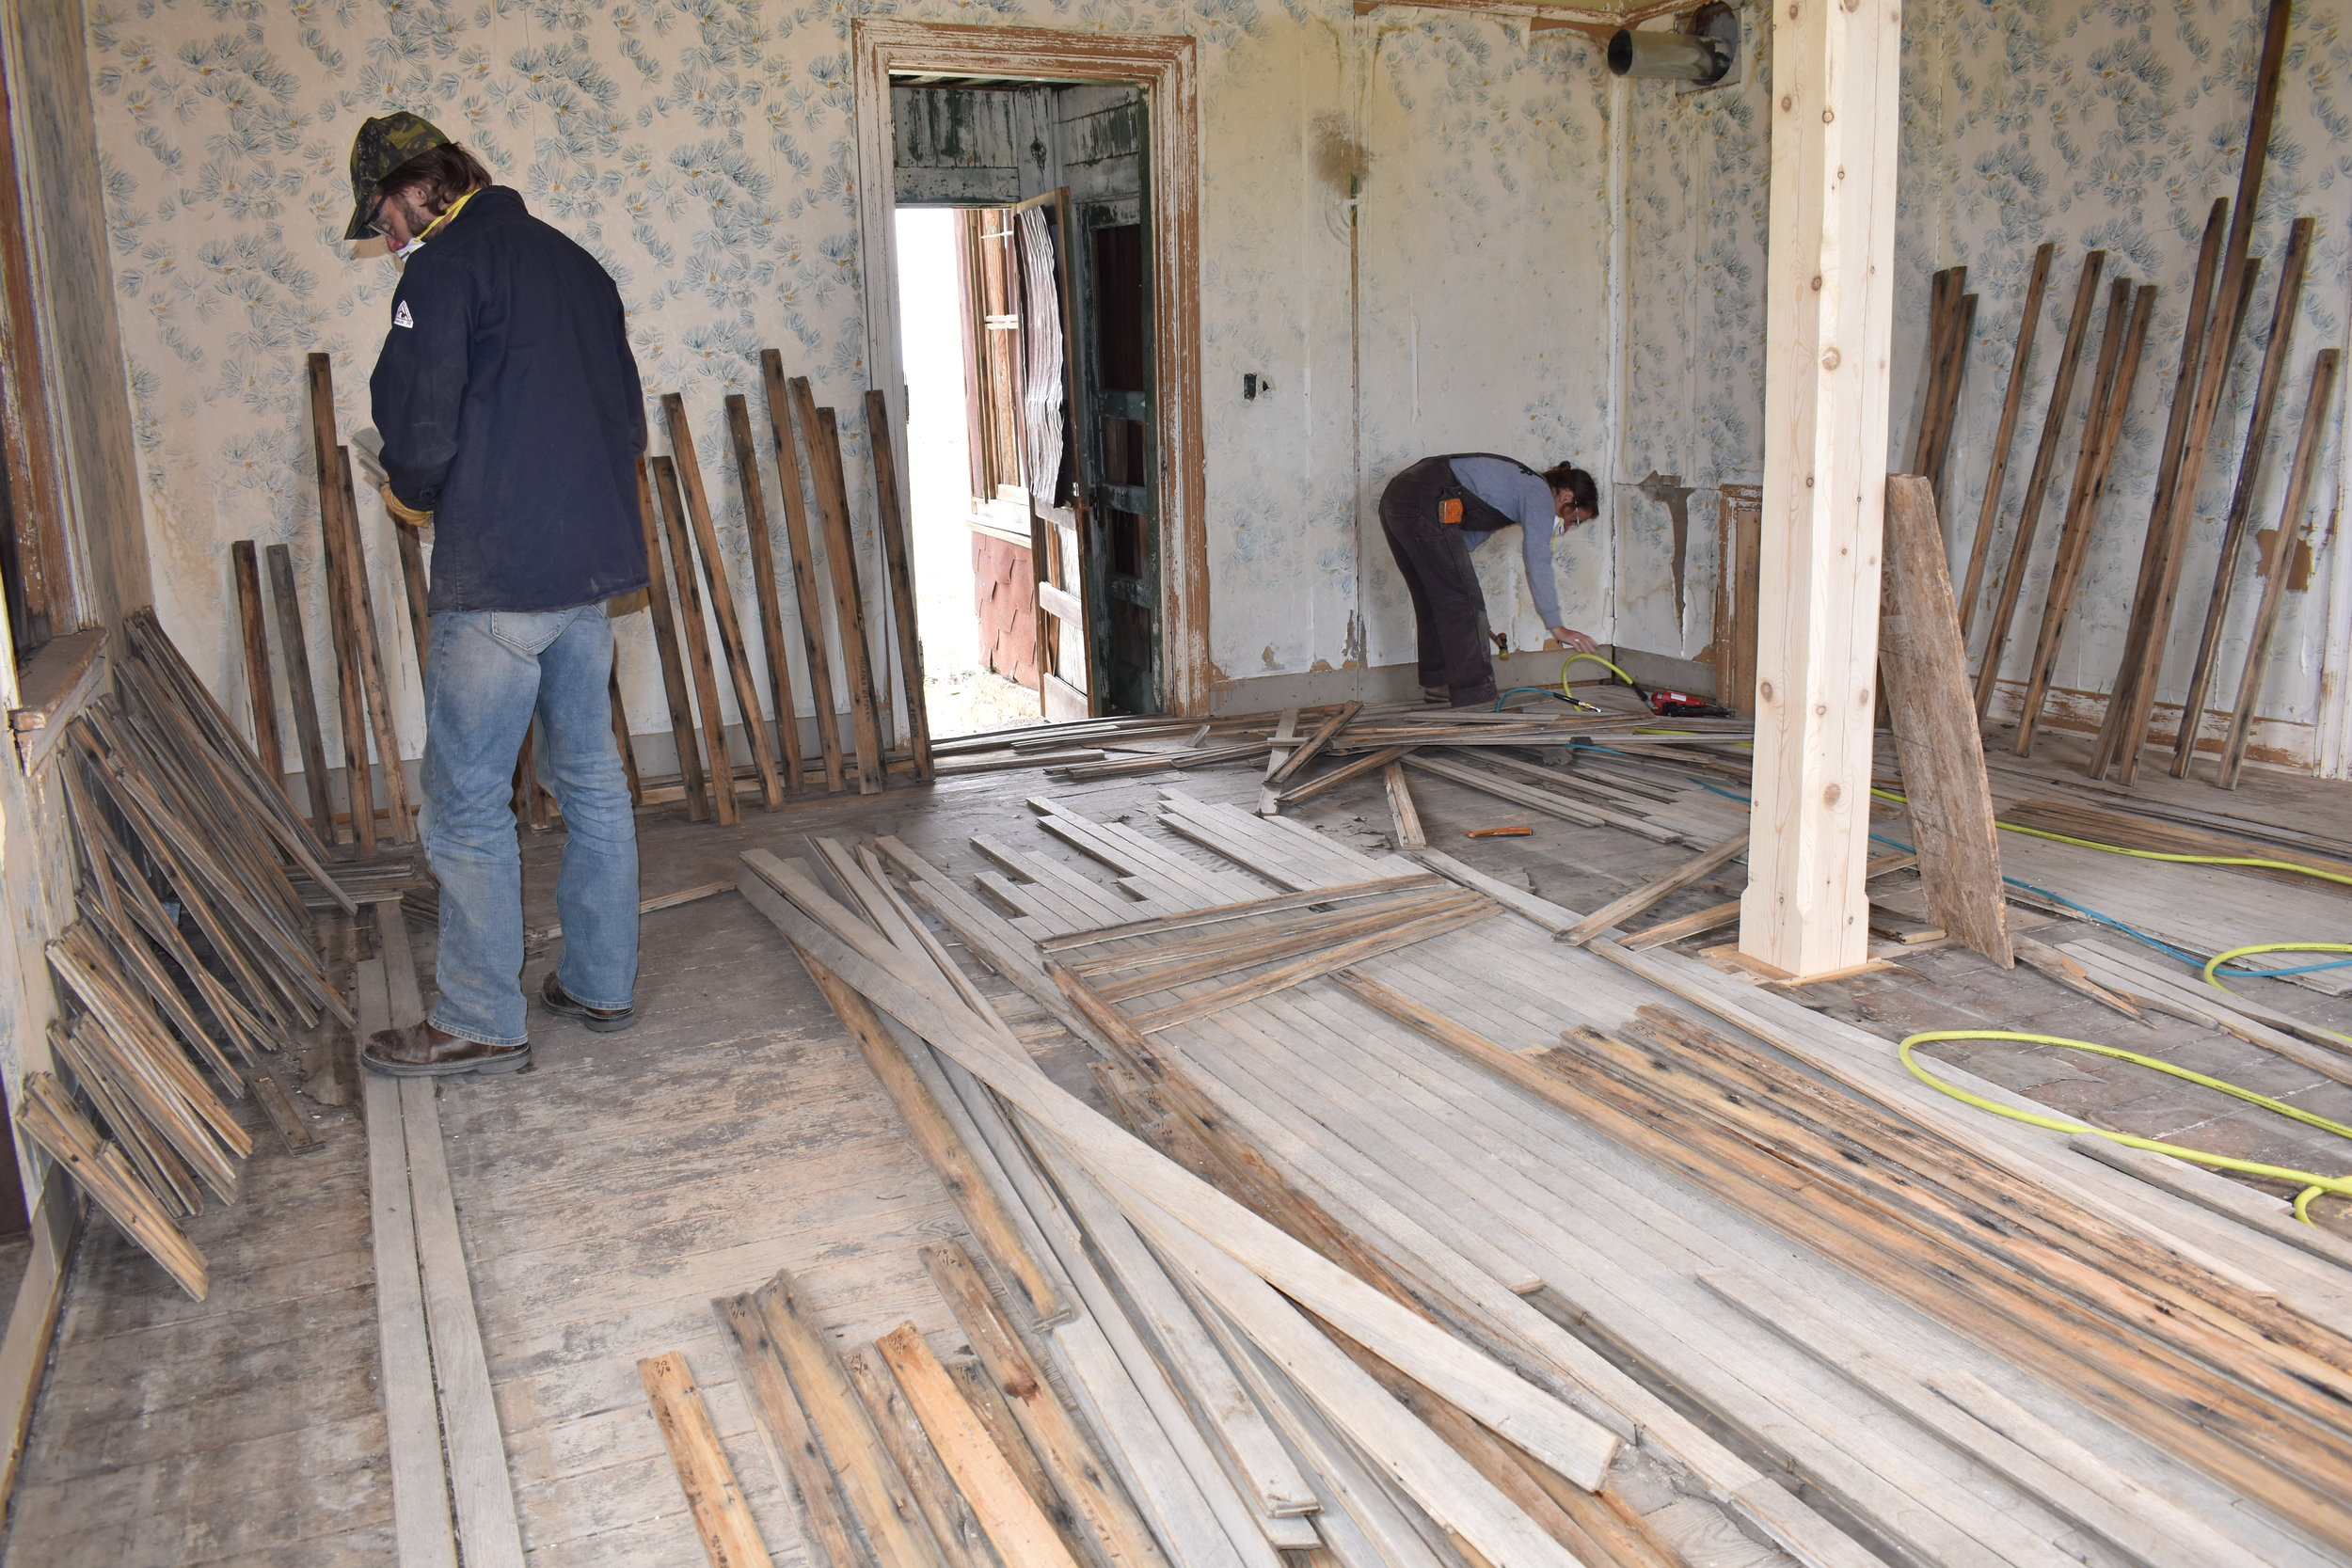 Molly Greenhouse and Todd Woolf of HistoriCorps work to repair on the original oak flooring inside the Bodie Railway office in 2019. Photo by Chris Spiller